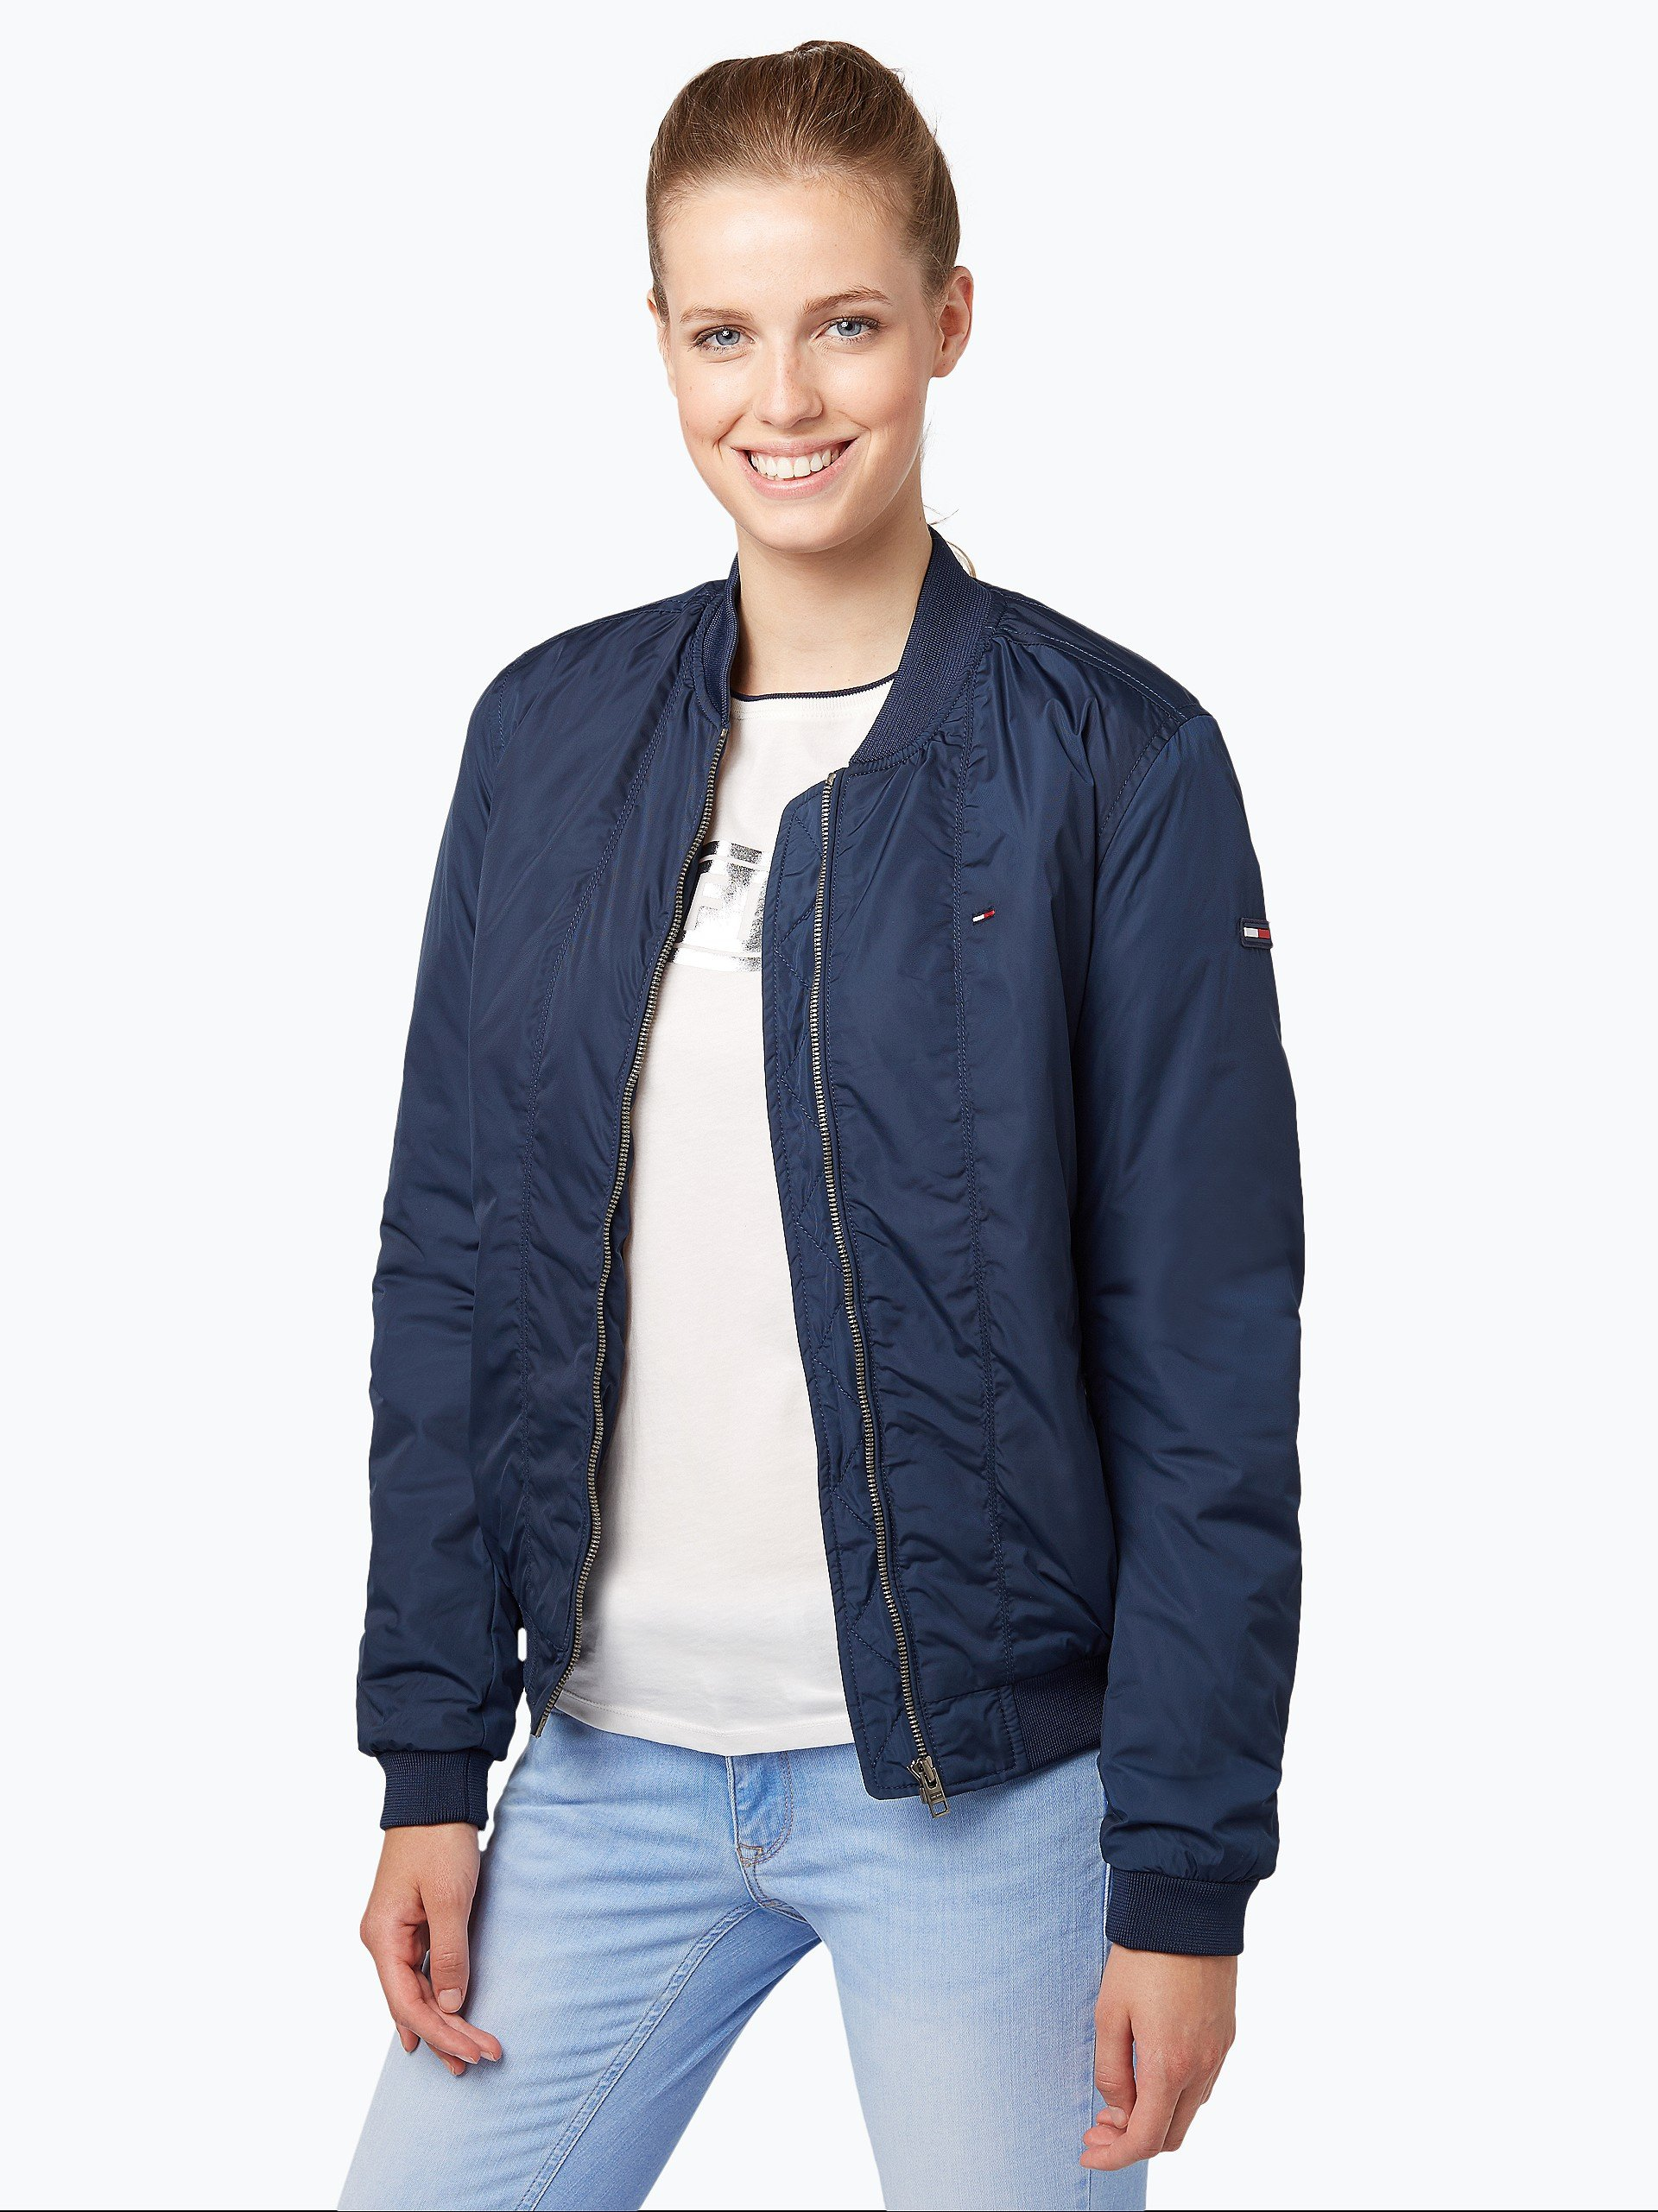 hilfiger denim damen jacke marine uni online kaufen peek. Black Bedroom Furniture Sets. Home Design Ideas